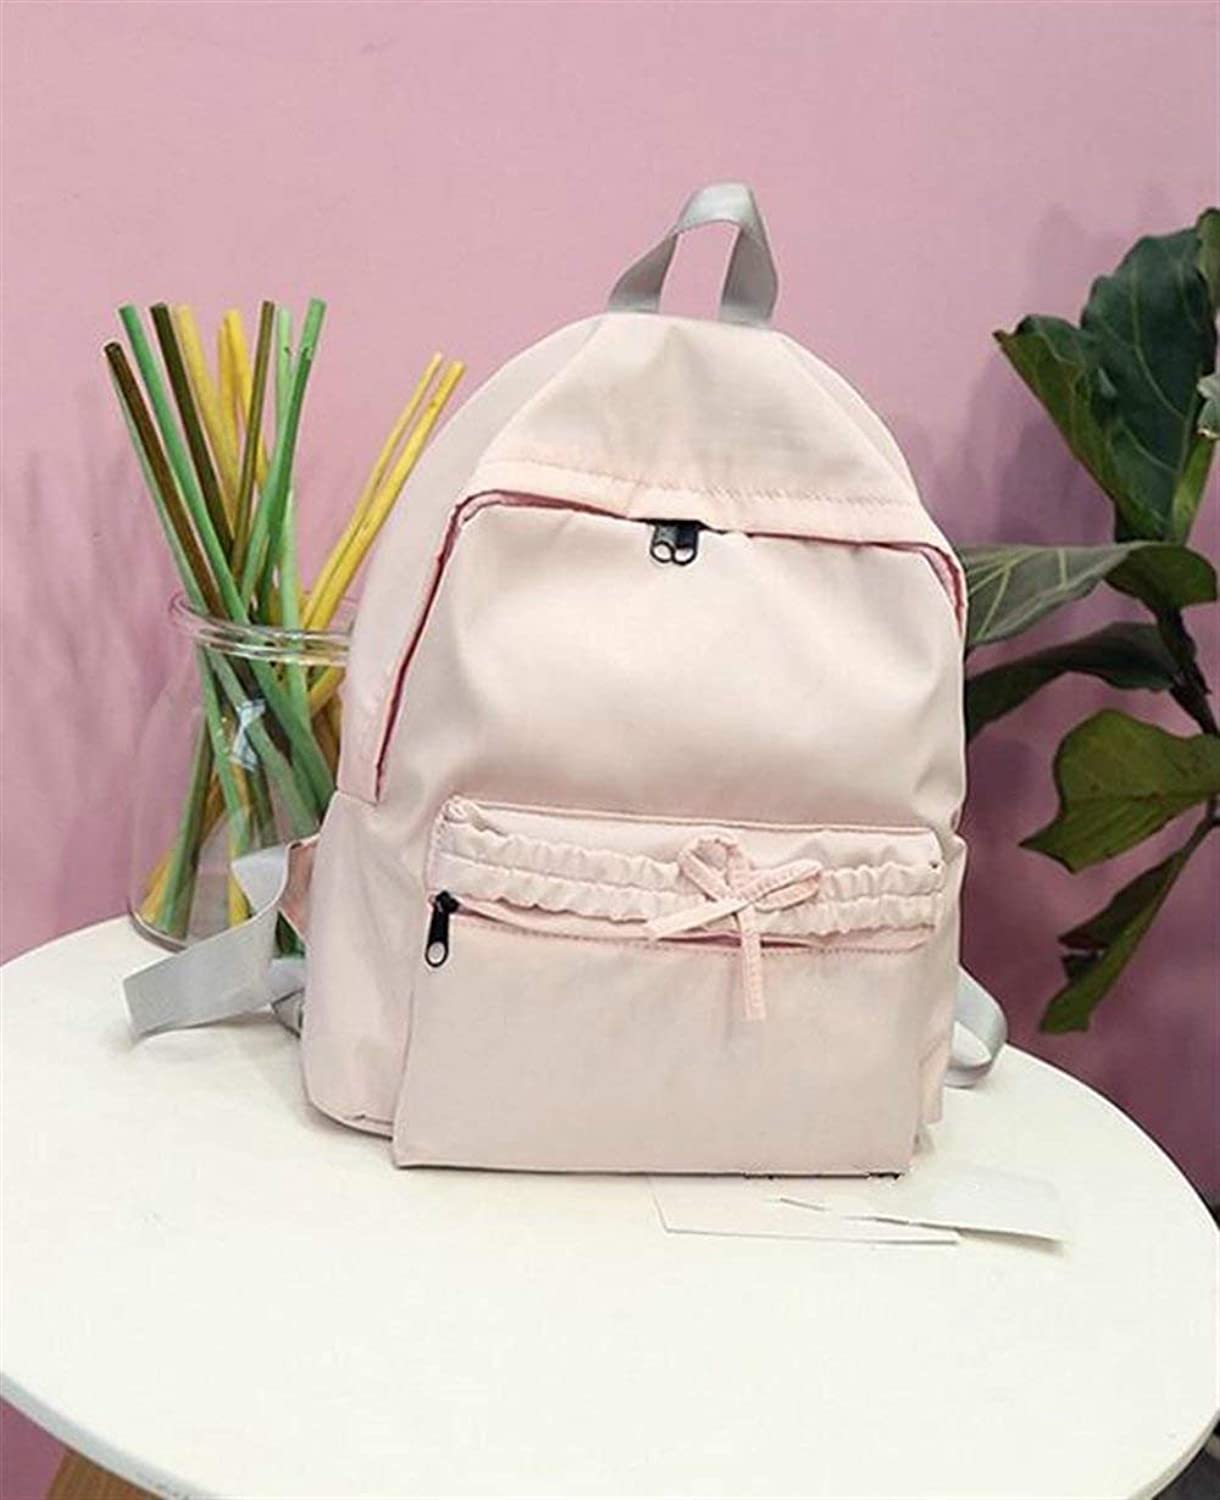 JINQD HOME Personality Backpacks Pure color Bowknot Fashion Small Traveling Backpack Student Schoolbag (color   Pink)